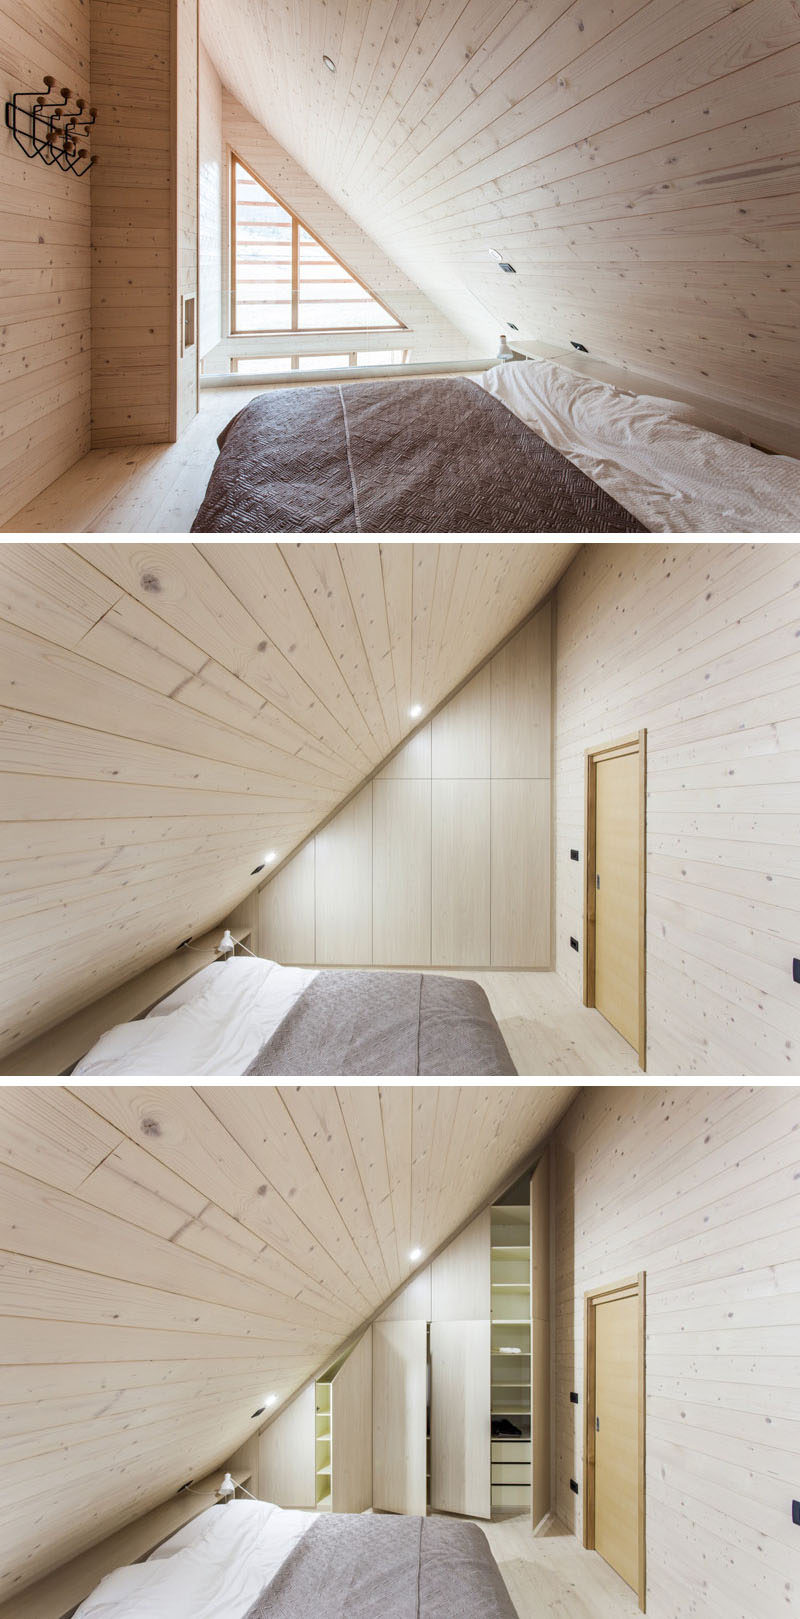 Thismaster bedroom has a sloped ceiling, matching the line of the house, while on one side of the bed there's a glass railing that overlooks the living room, and on the other side of the bed, there's a wall of built-in storage.